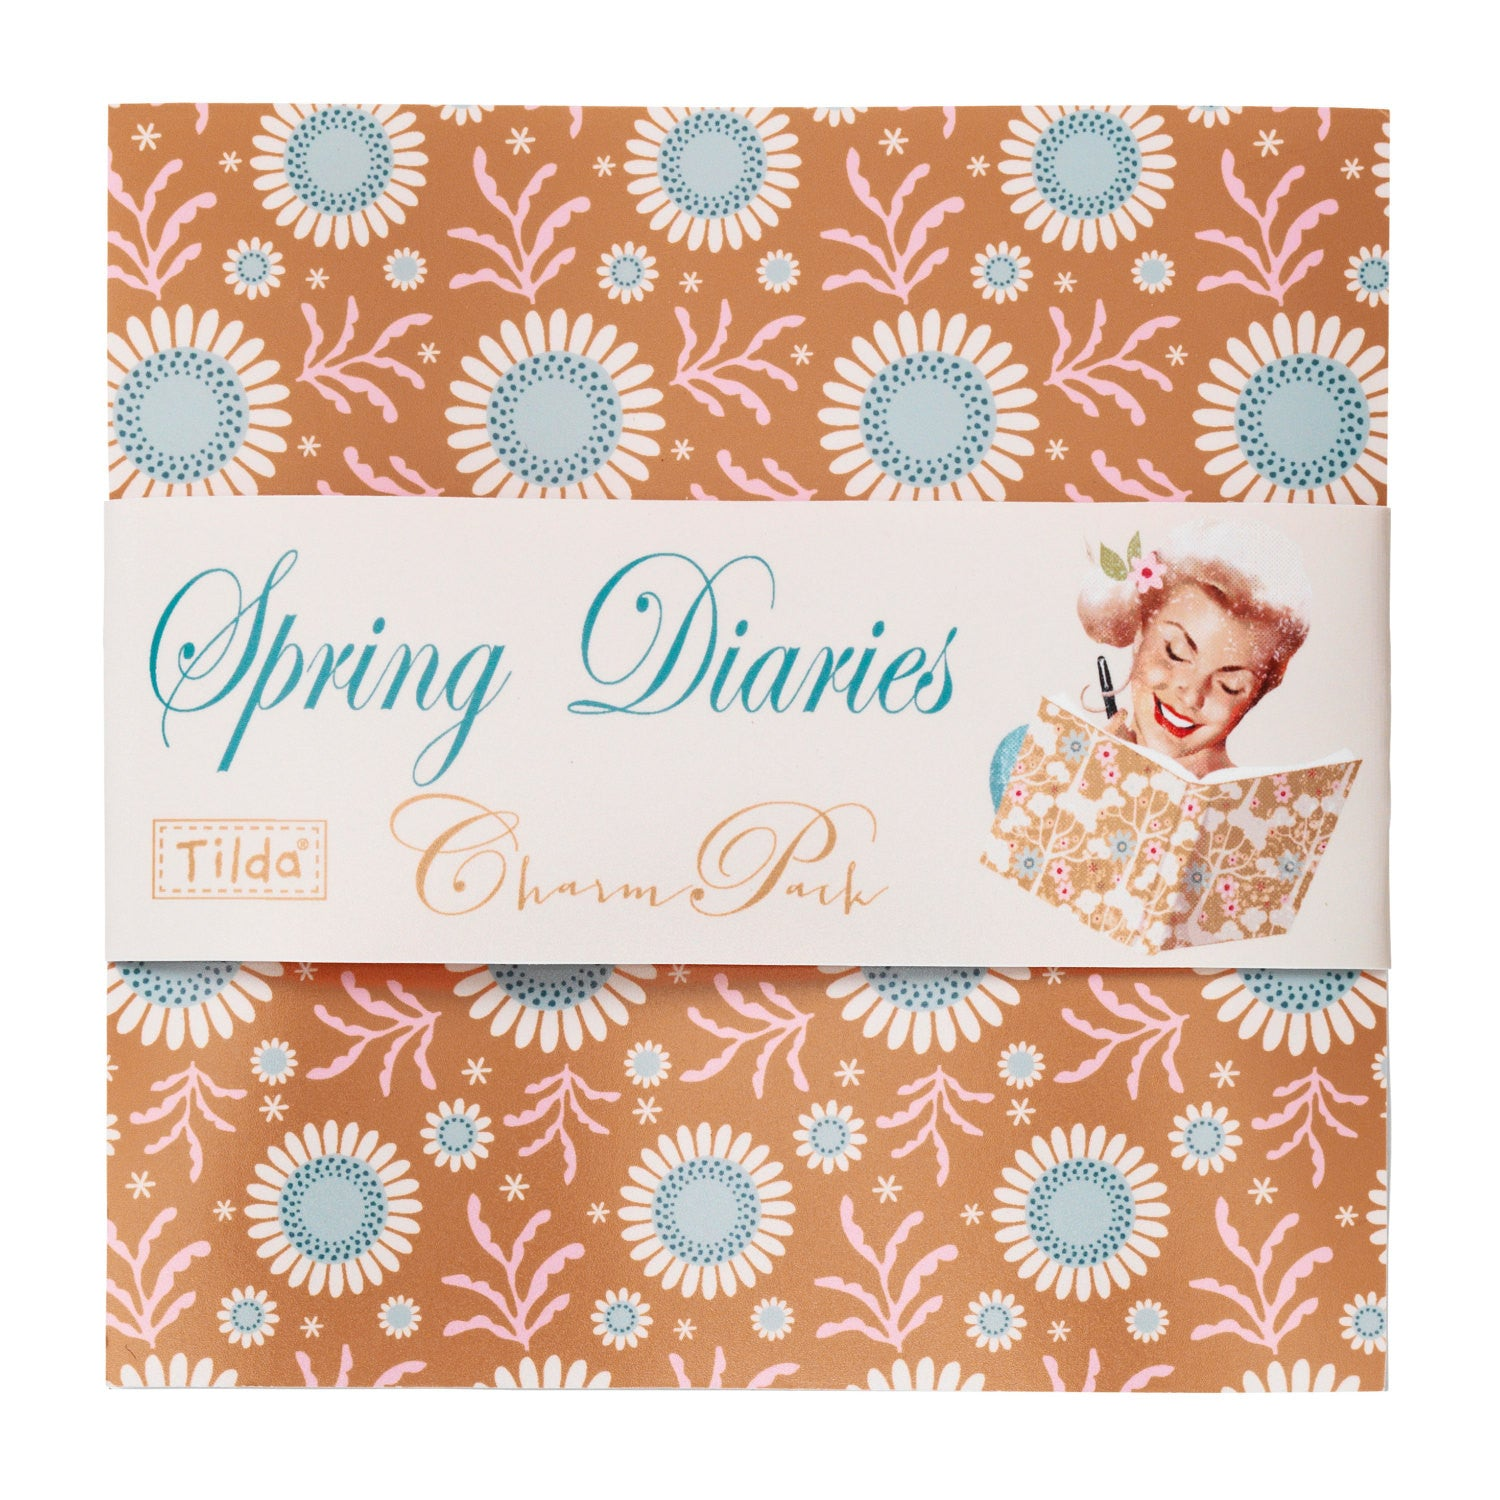 Spring Diaries - 42 Piece Charm Pack Bundle - Vera Fabrics